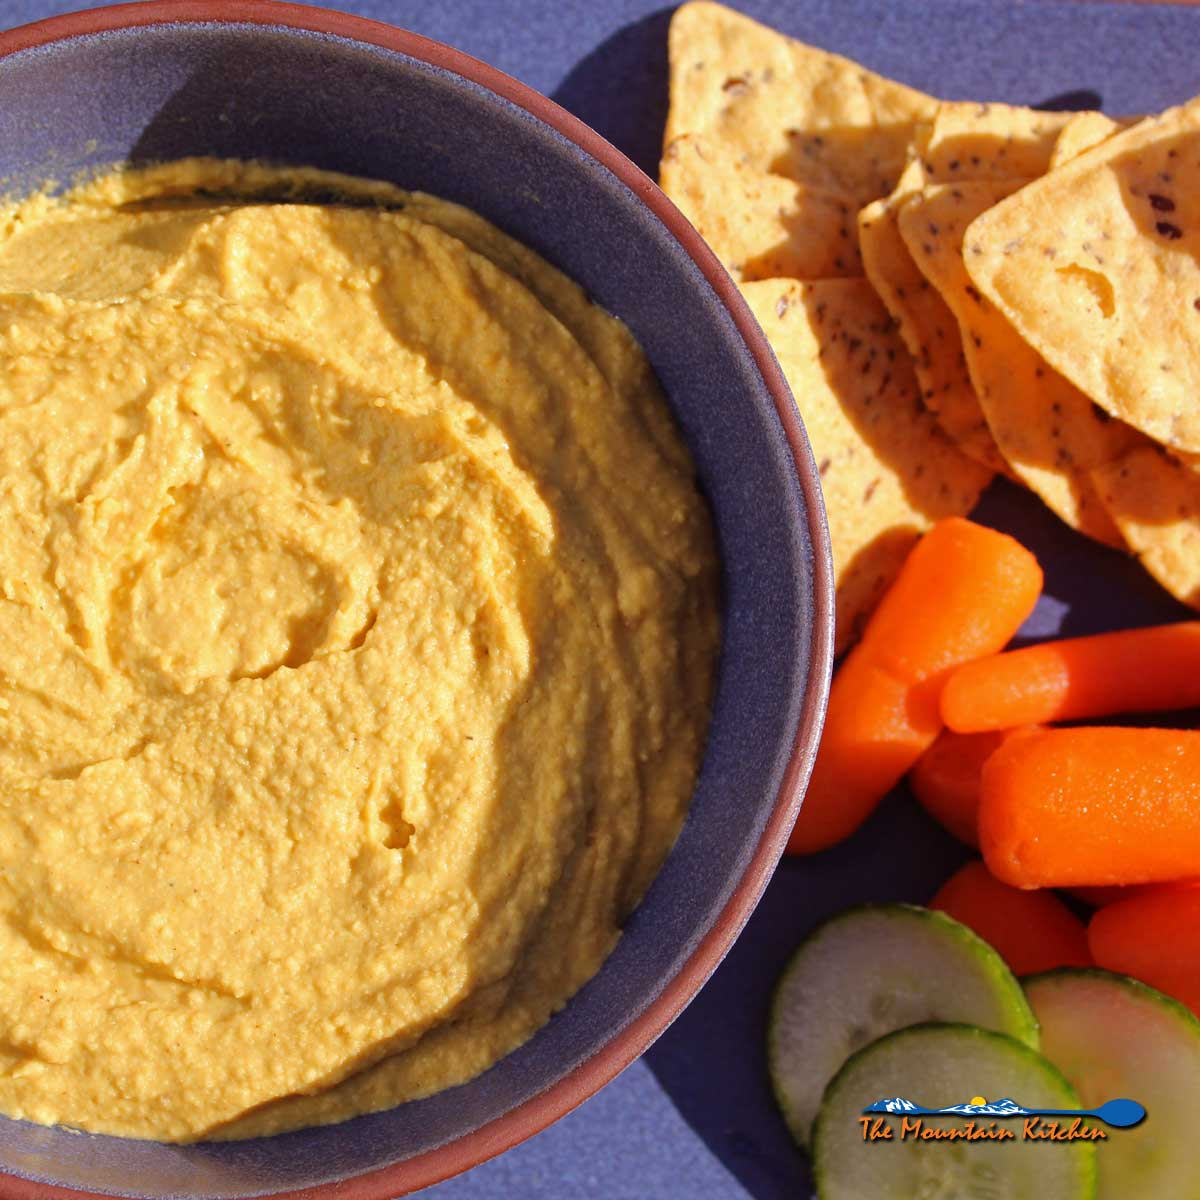 Curry hummus gets extra creaminess from greek yogurt and warm earthy spice from madras curry. A healthy snack packed with protein and fiber. It's addictive!